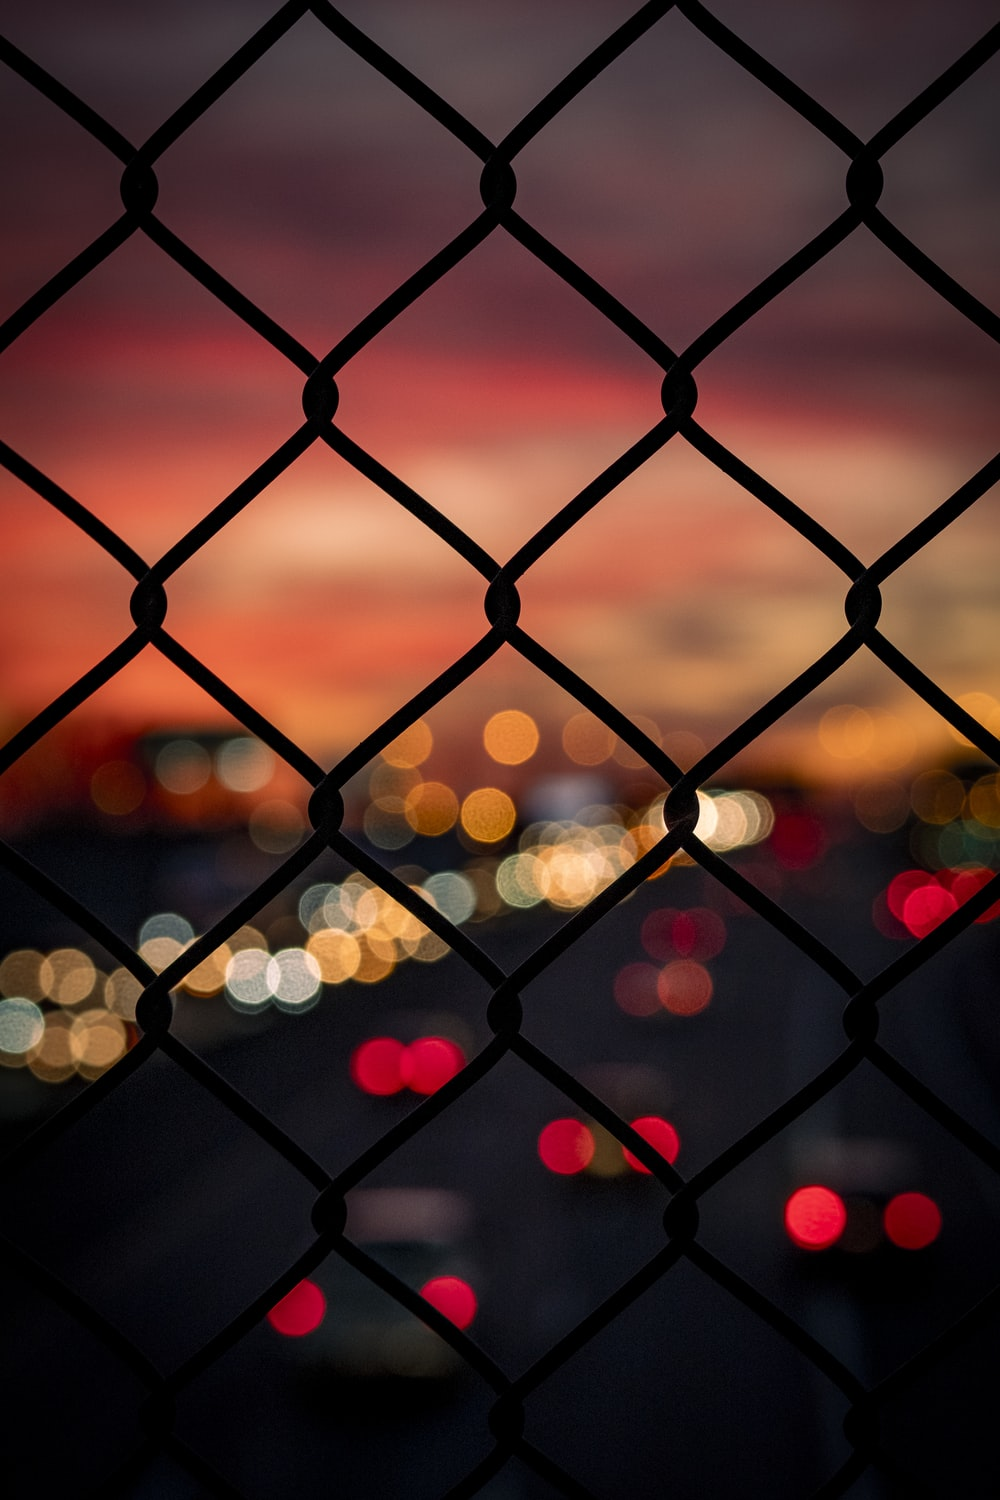 bokeh photography of chain link fence